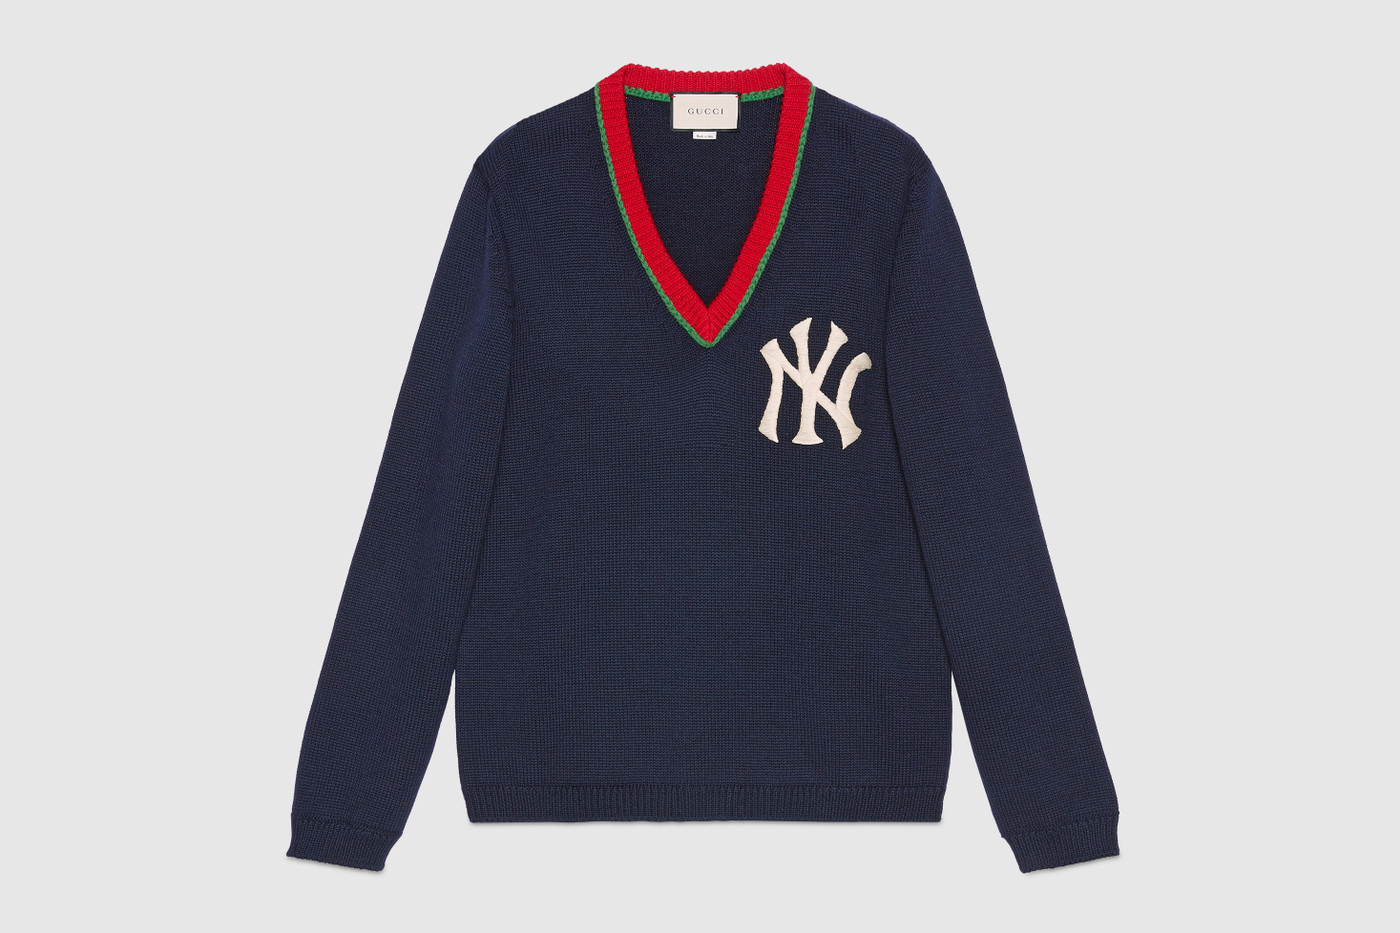 Gucci Extends On Its Love For The Ny Yankees With A New